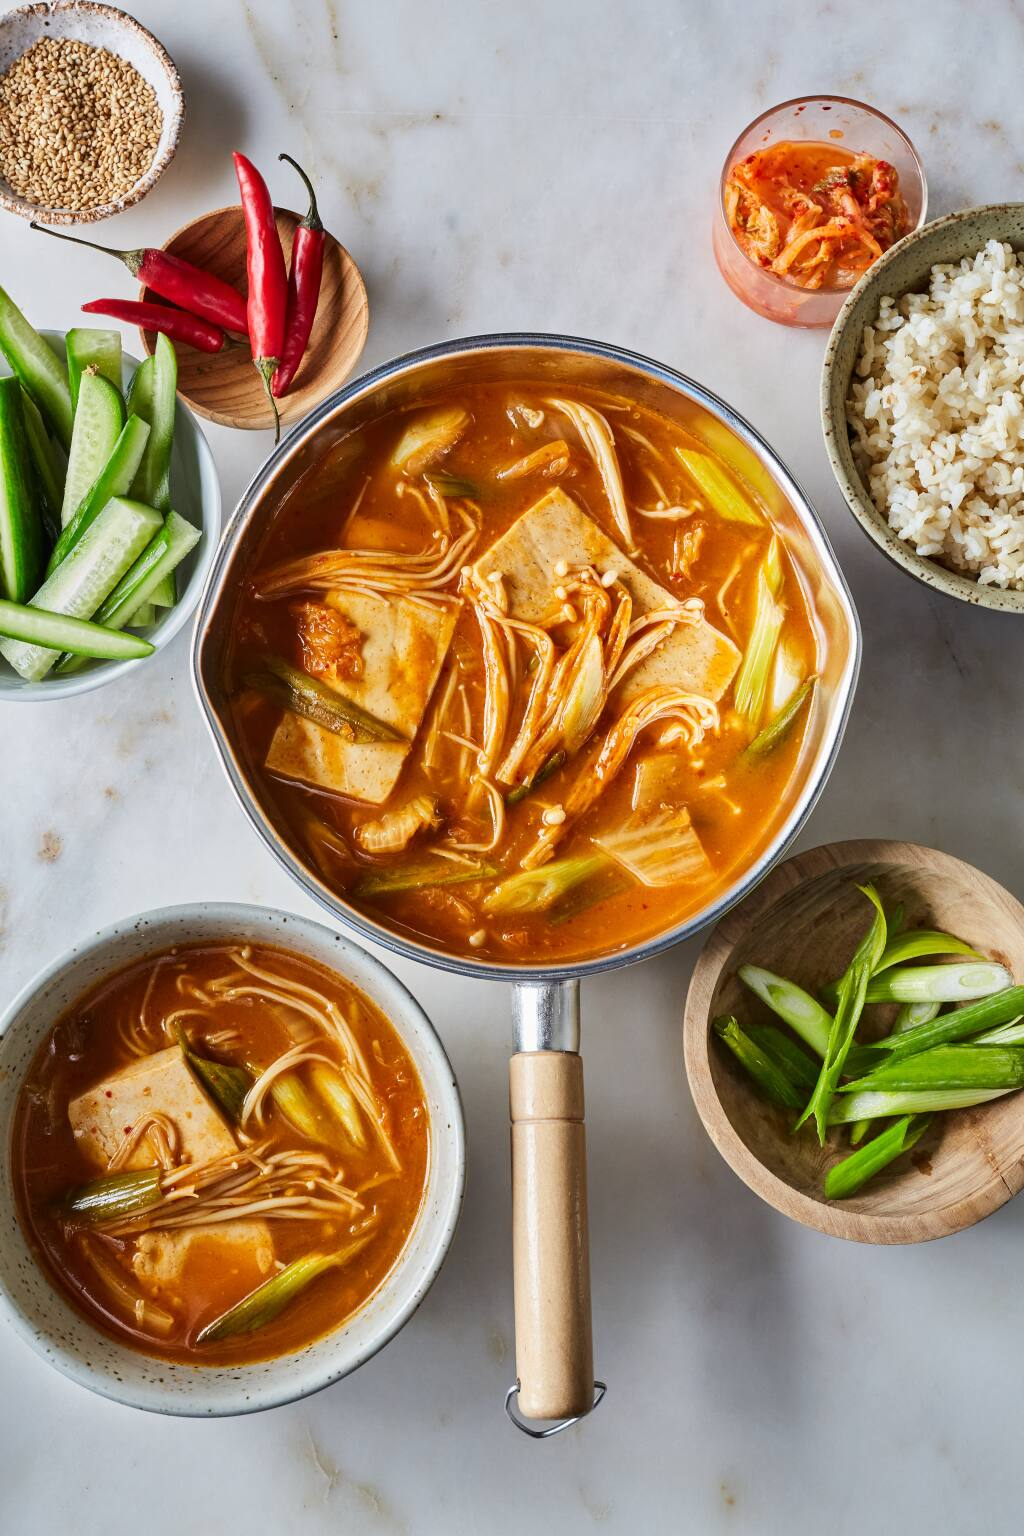 """Kimchi Jjigae (Vegan Korean Soft Tofu and Kimchi Stew), from Dr. Linda Shiue's cookbook """"Spicebox Kitchen,"""" is traditionally cooked in a stone pot, but any heavy pot will work well. (Michelle K. Min/Go Hachette)"""